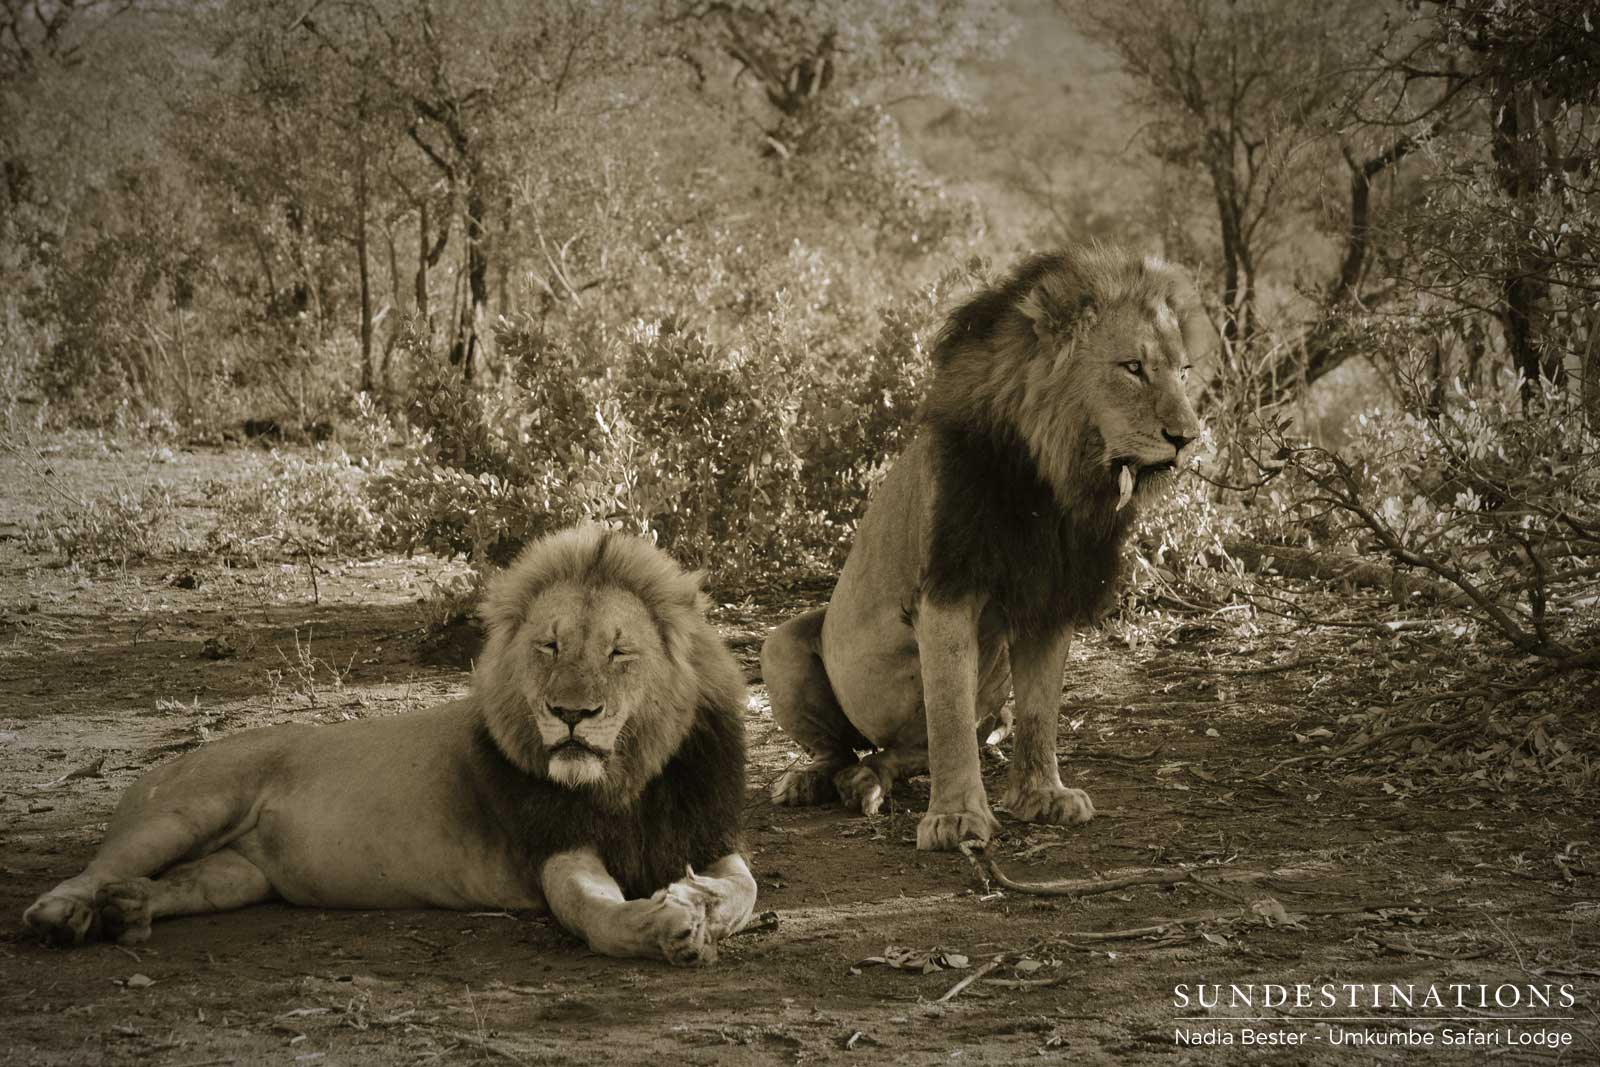 Portraits of the Charleston Male Lions at Umkumbe